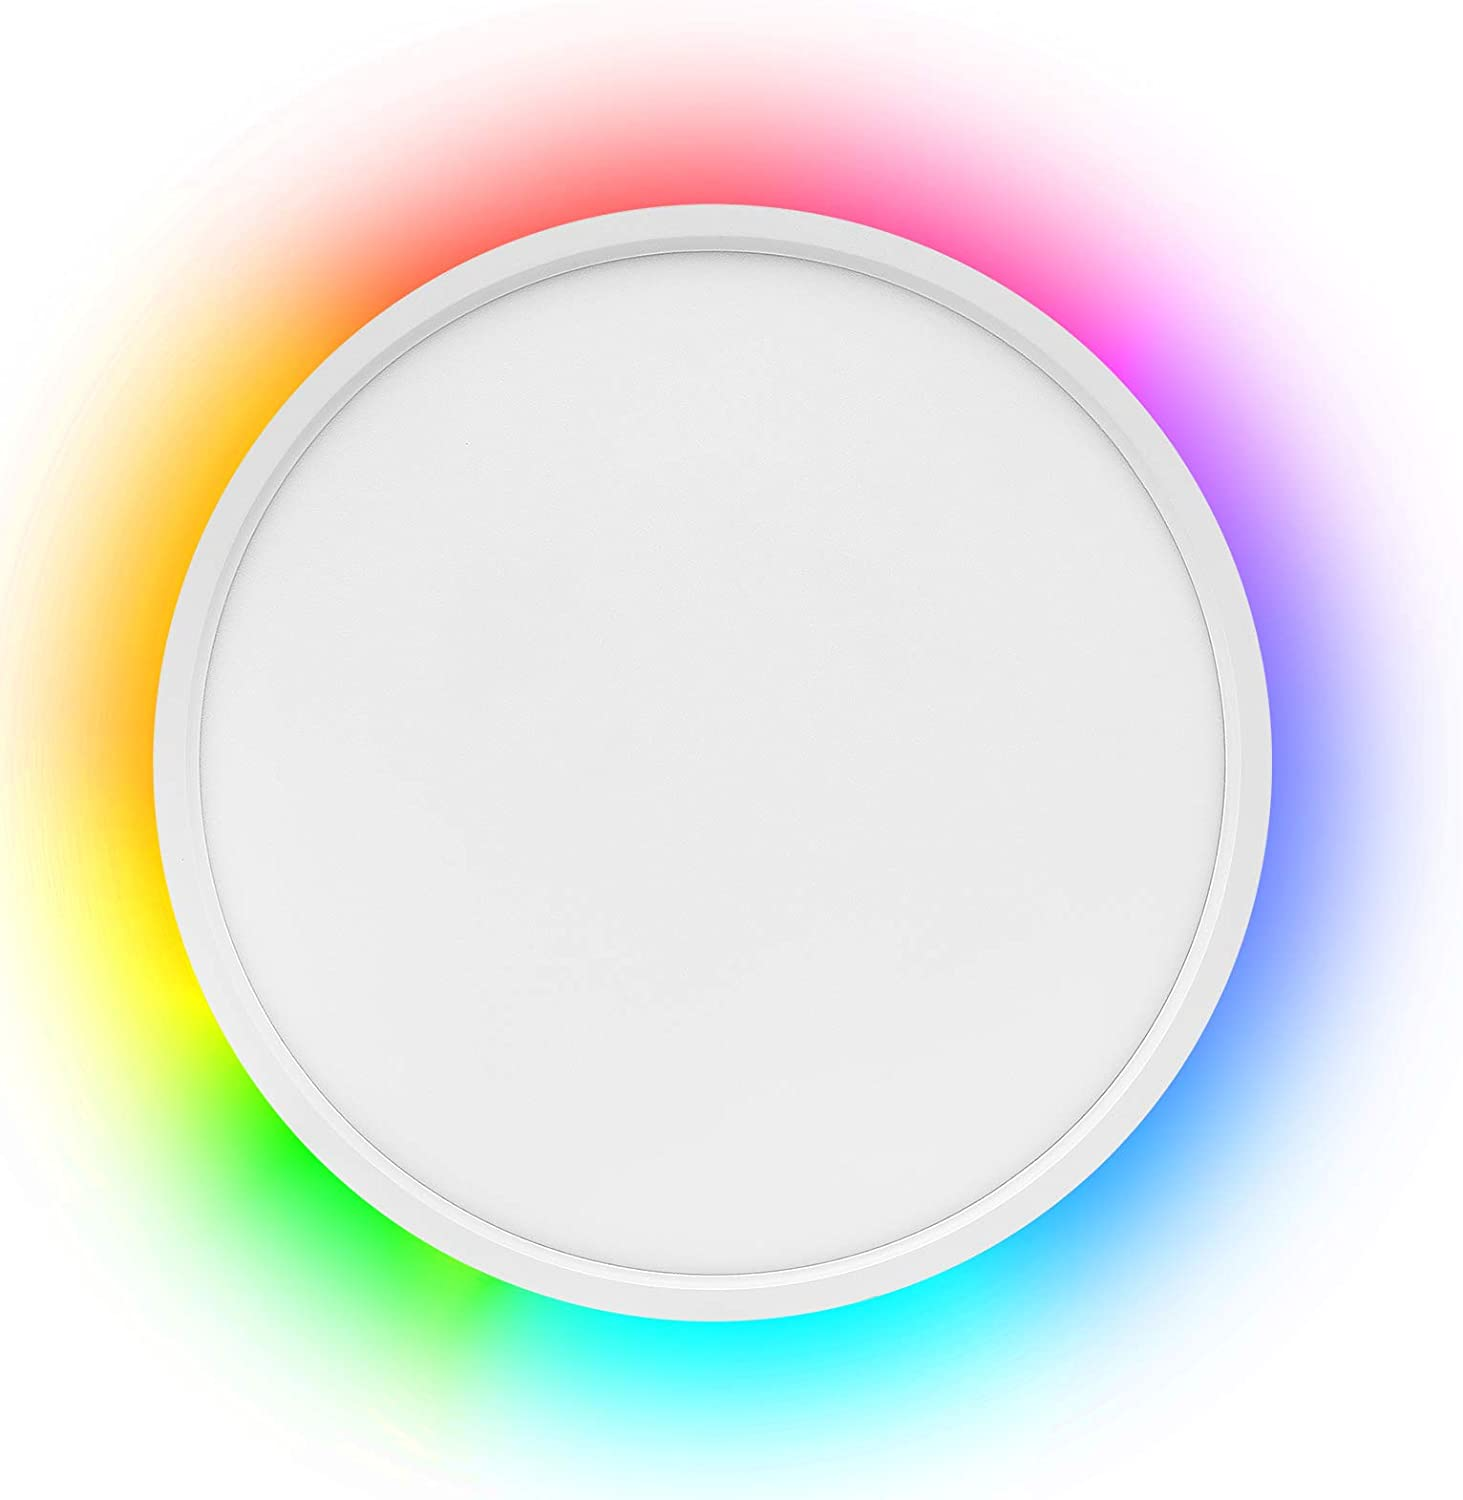 Smart LED Flush Mount Ceiling Light WiFi, Compatible with Alexa Google Home, 12inch 24W 2000LM Adjustable Light with Ambient Light Fixture for Bedroom Living Room Dining Hall Party